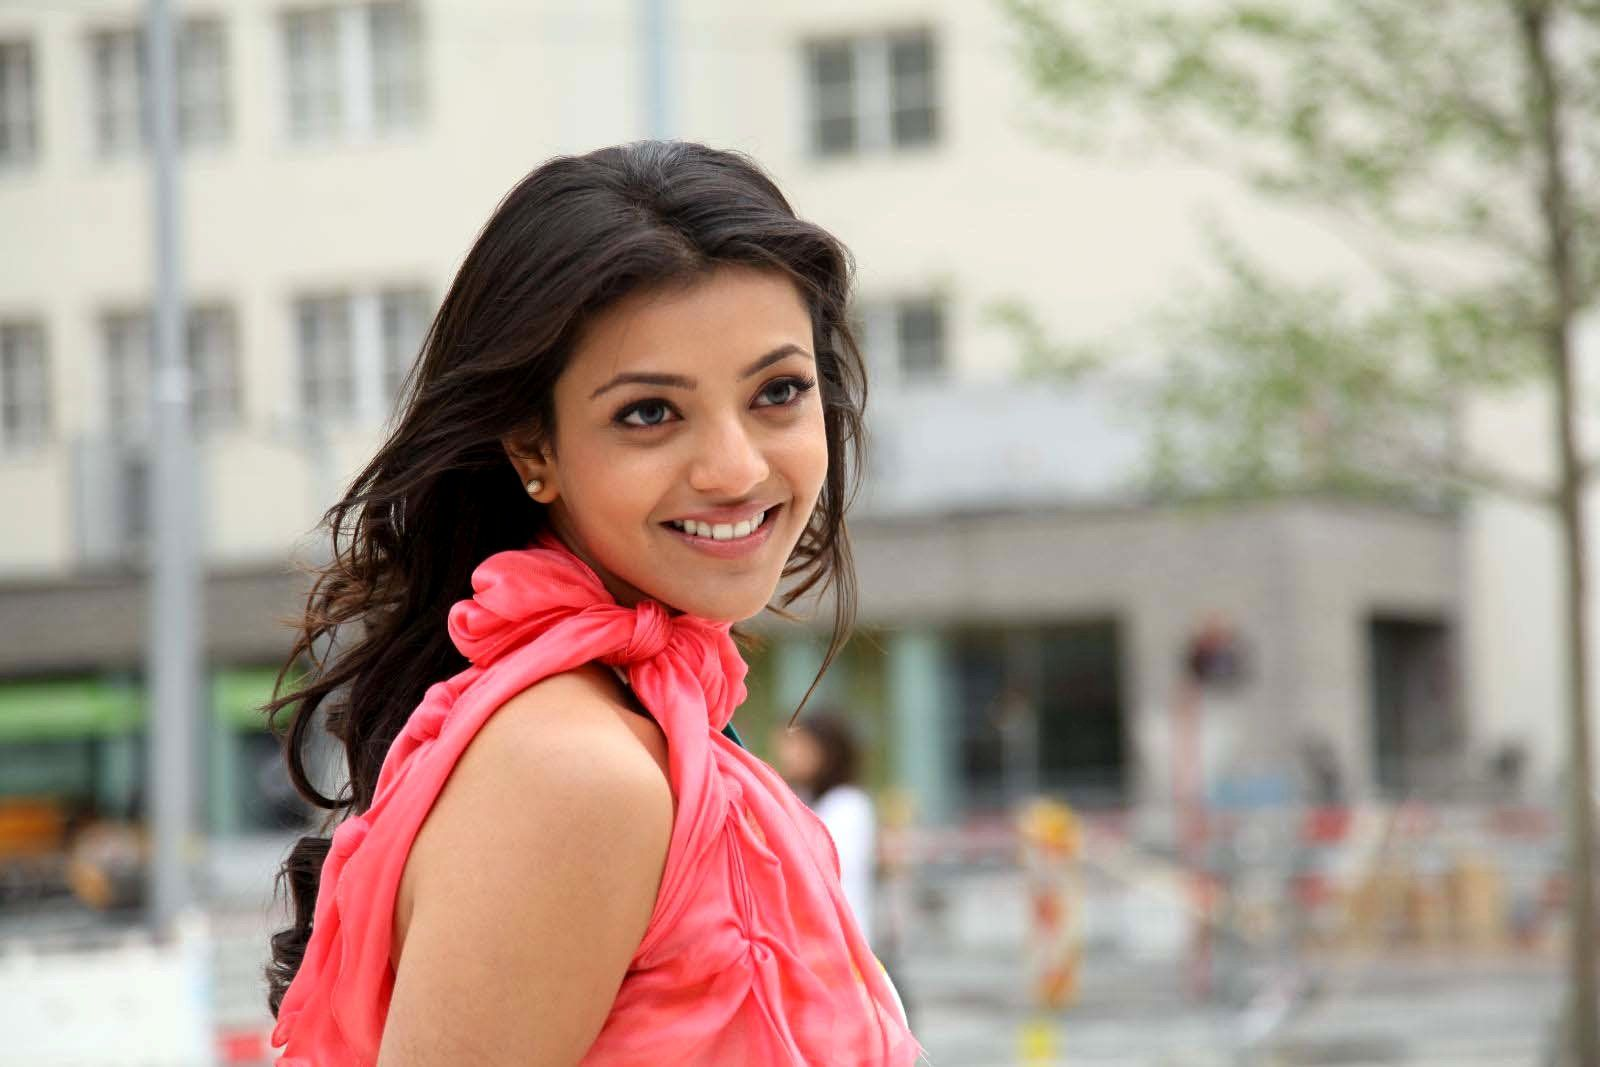 Wallpaper download kajal agarwal - Kajal Agarwal Latest Hot Skirt Stills